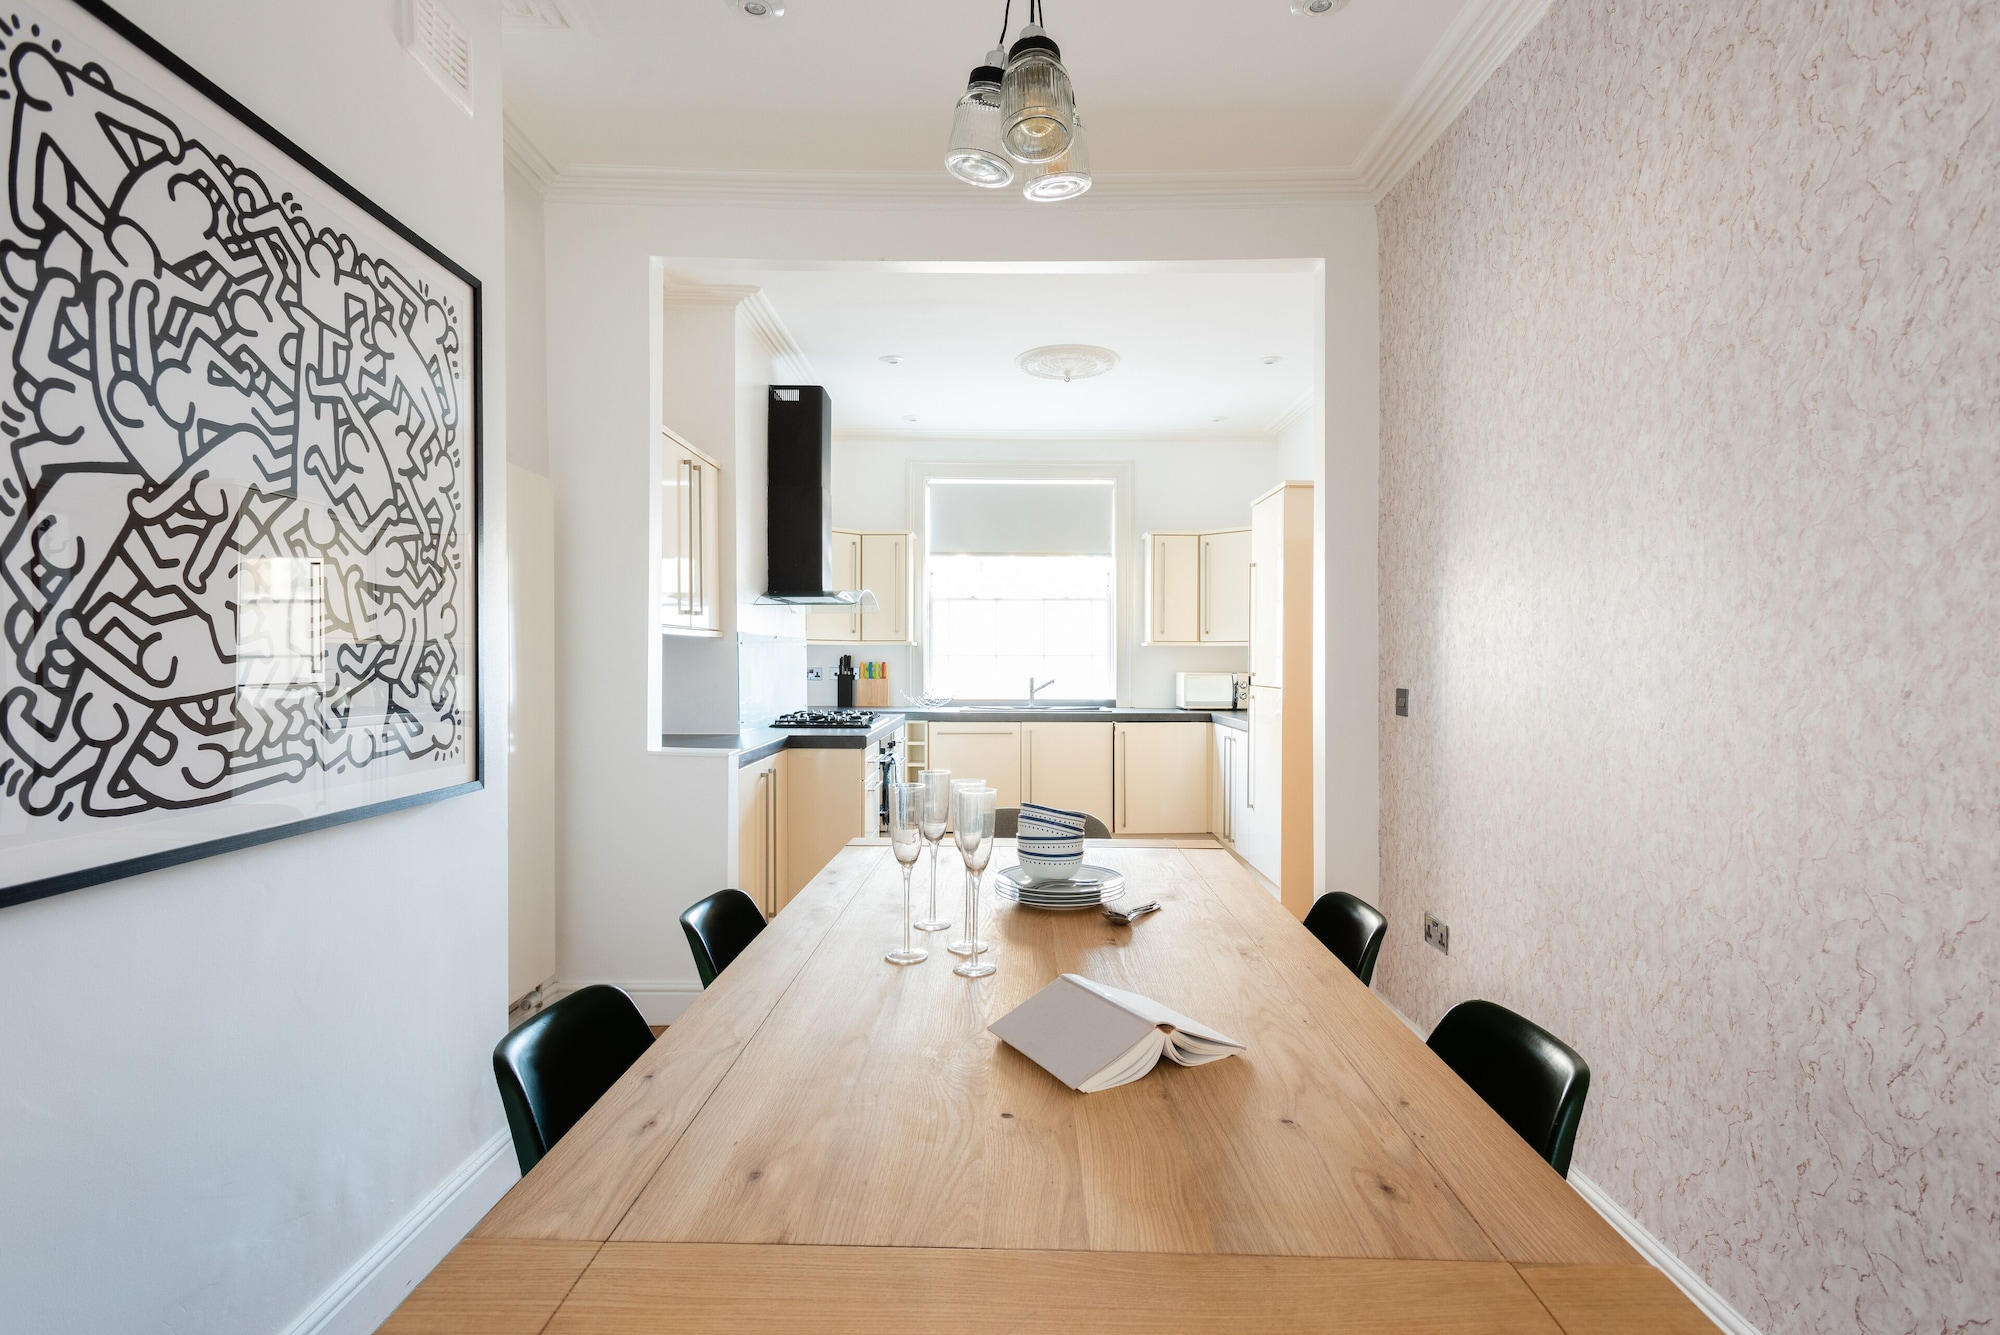 The Kings Row - Quiet & Modern 3bdr Near Kings Cross With Garden, London